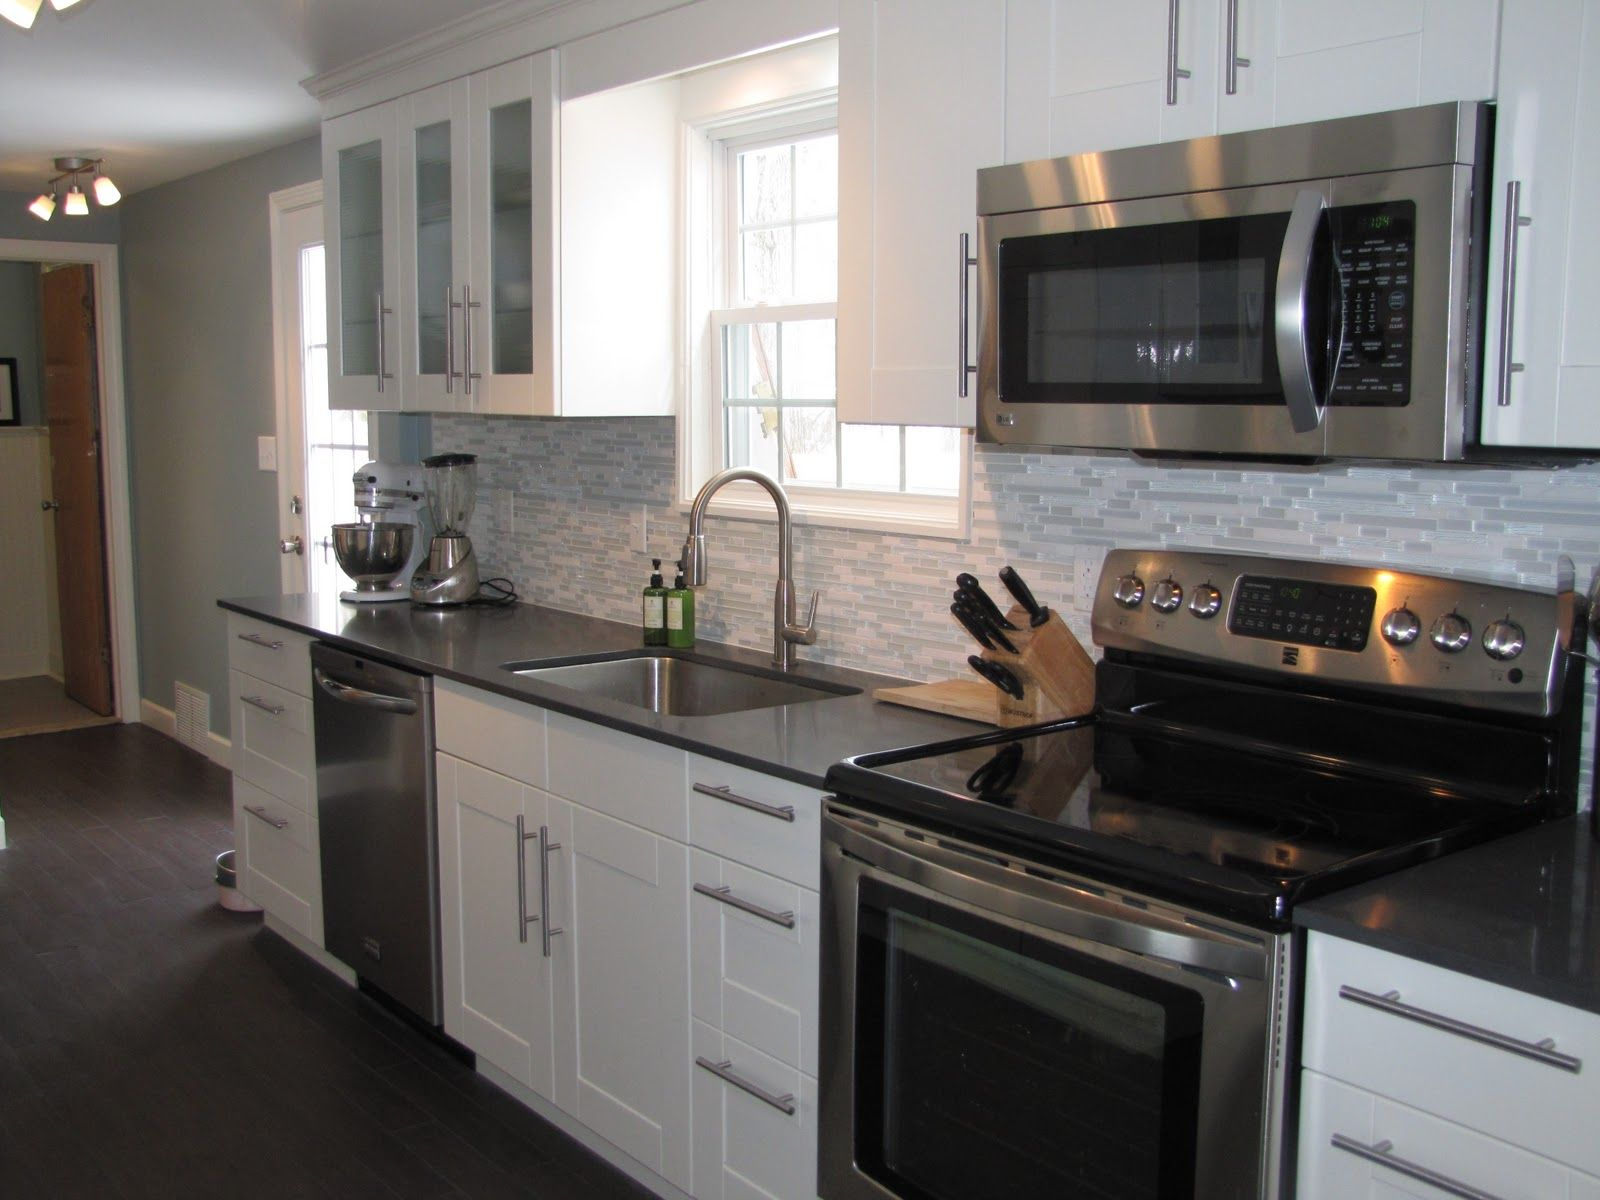 Pinterest Cabinets Kitchen Glamorous Kitchen Cabinet Colors With Black Appliances